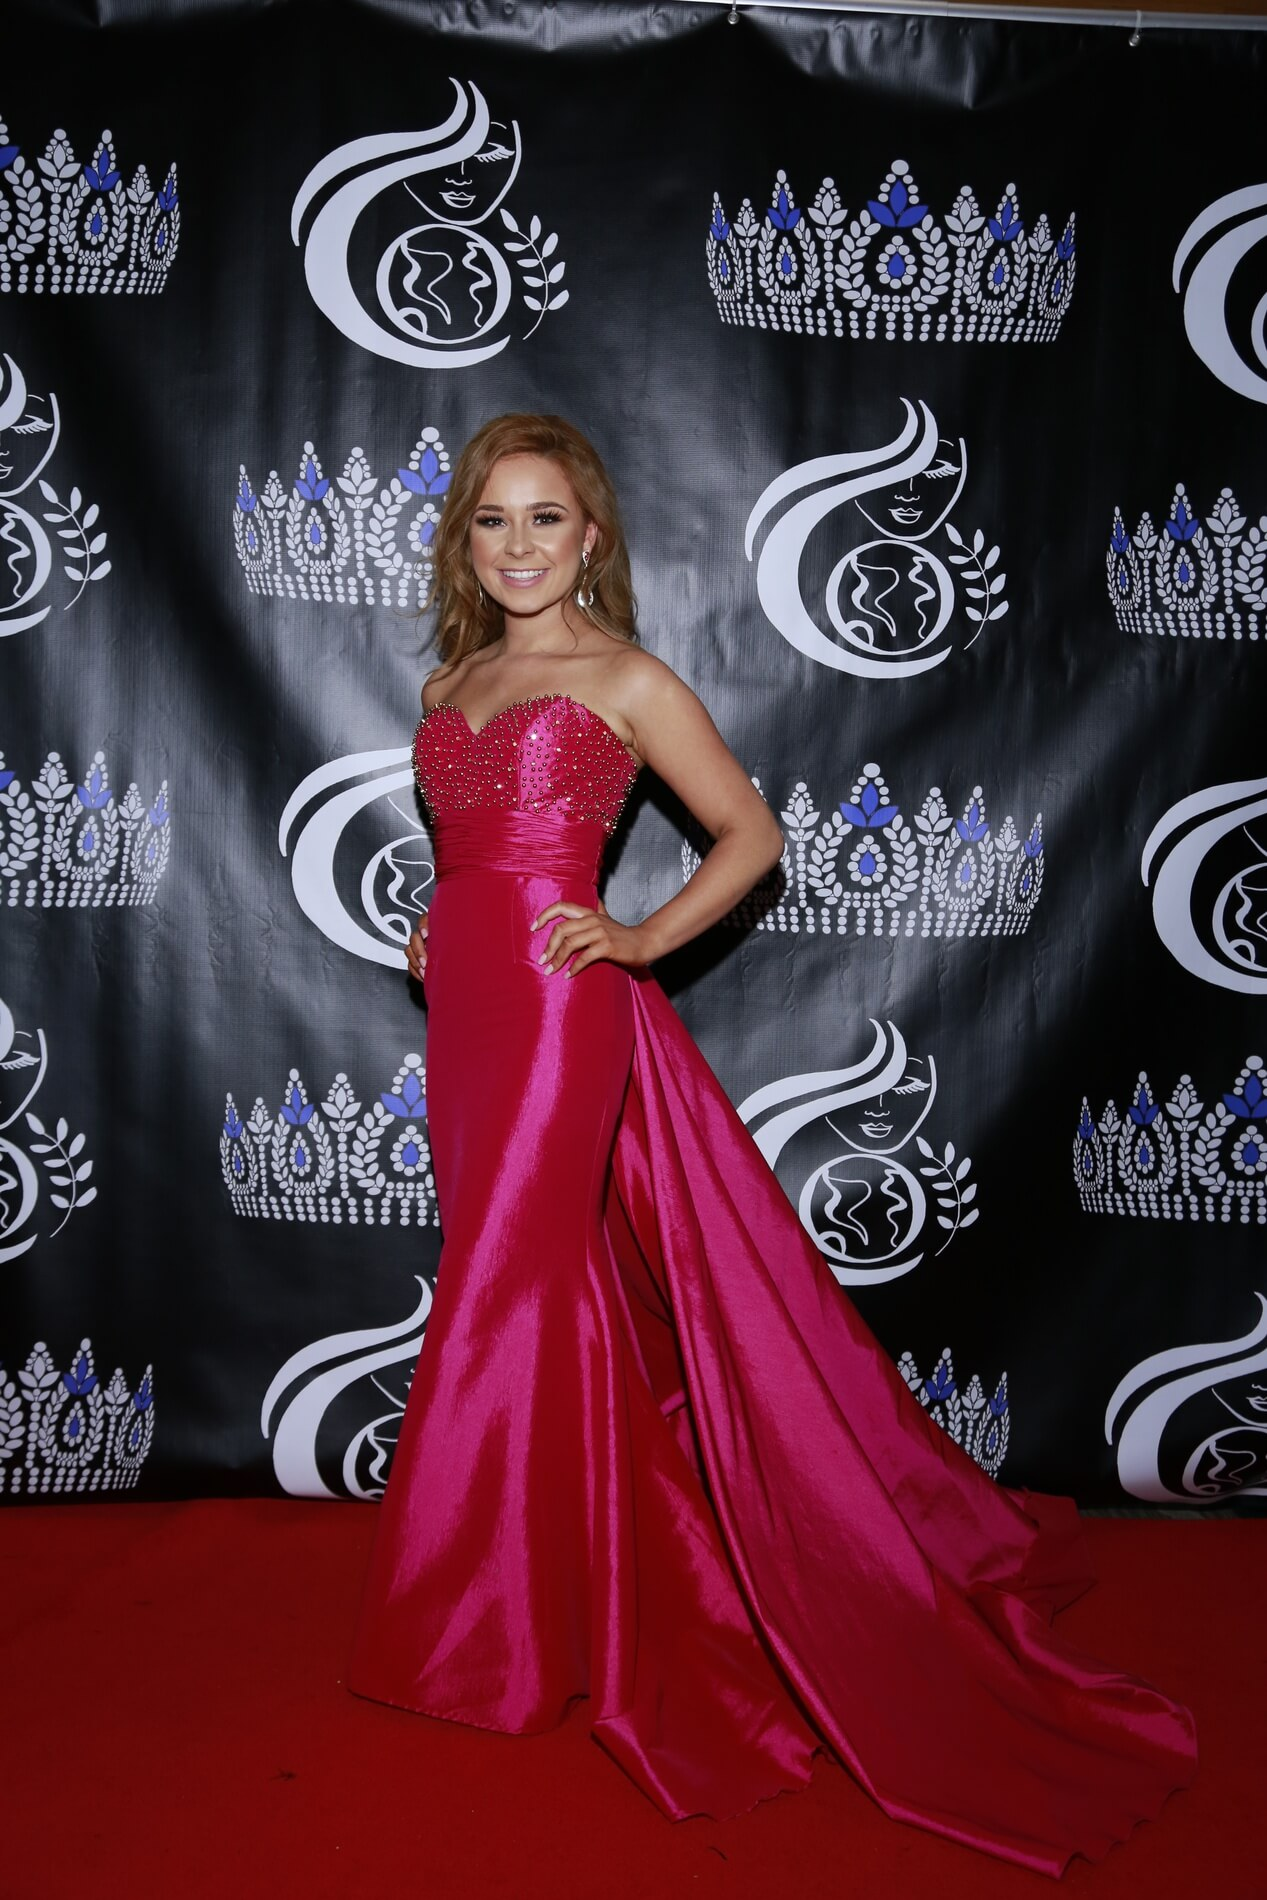 Queenly   The largest marketplace for prom, pageant, and formal dresses